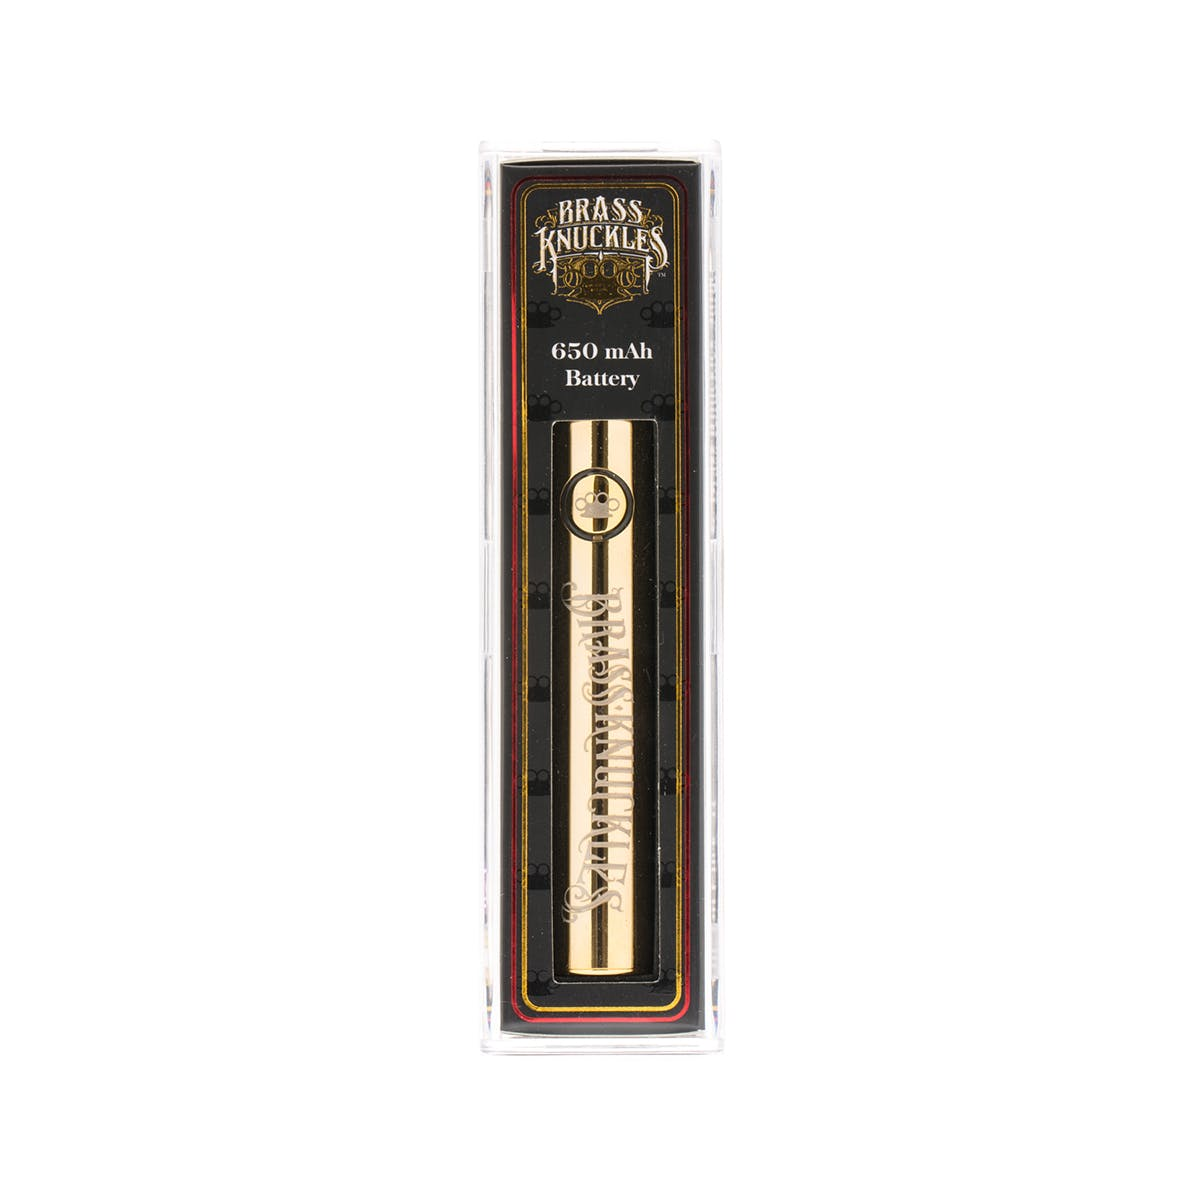 marijuana-dispensaries-platinum-club-in-reseda-brass-knuckles-gold-battery-650mah